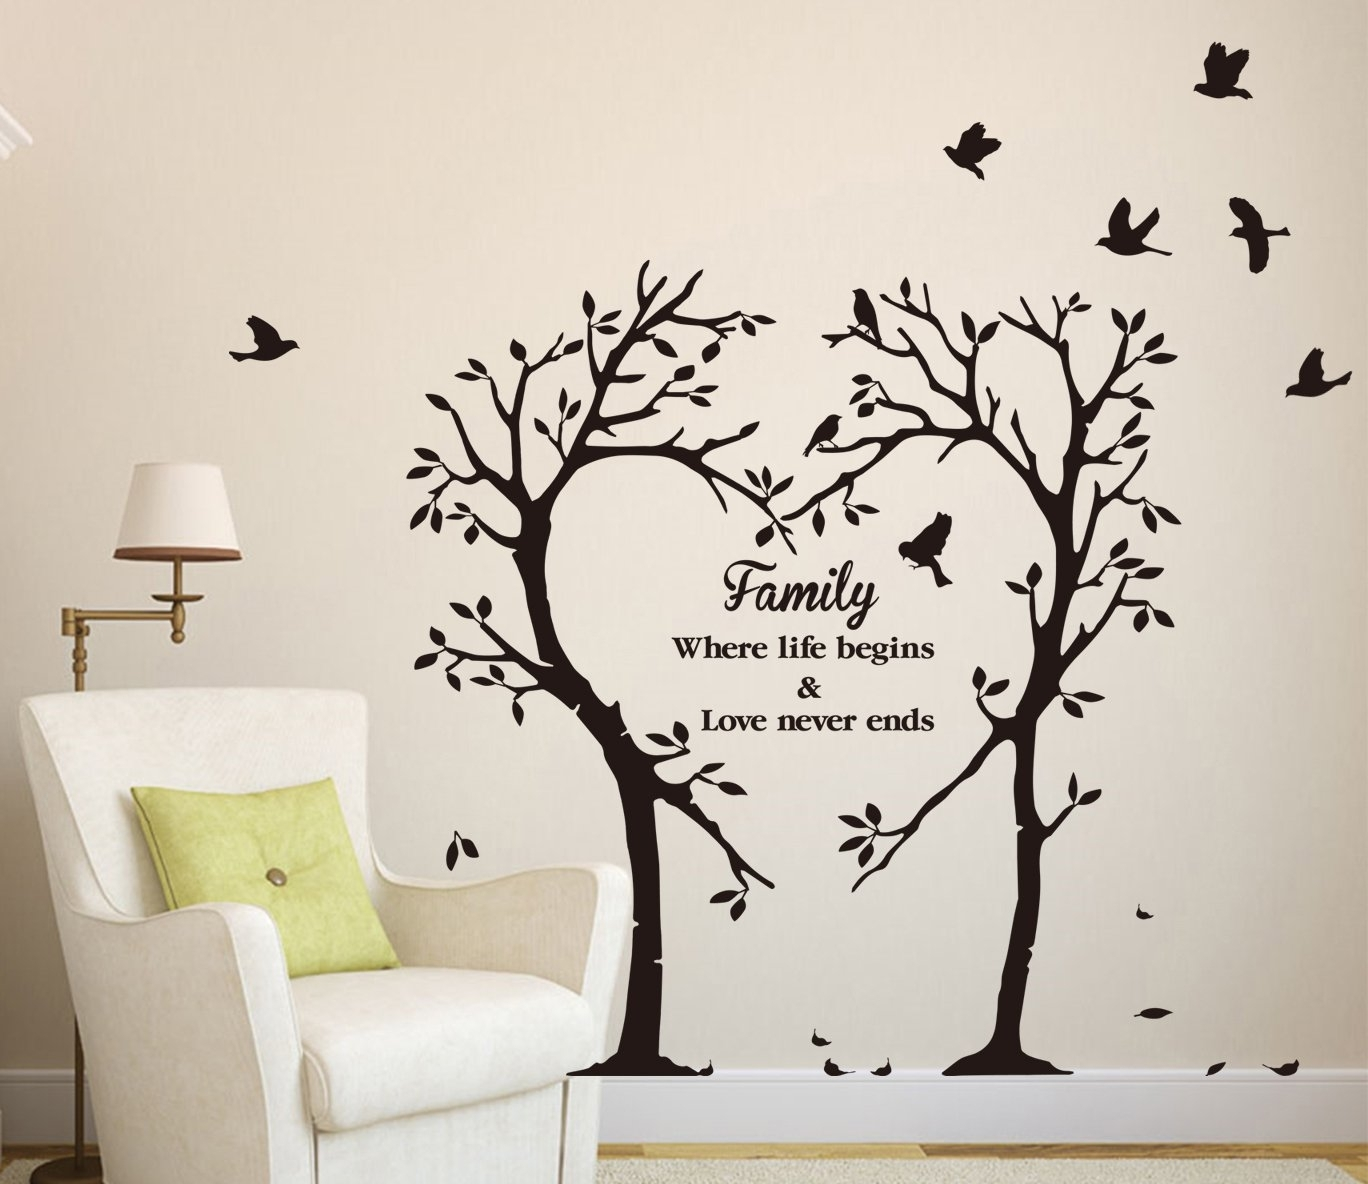 Large Family Inspirational Love Tree Wall Art Sticker, Wall Sticker Pertaining To Most Recently Released Family Tree Wall Art (View 7 of 15)